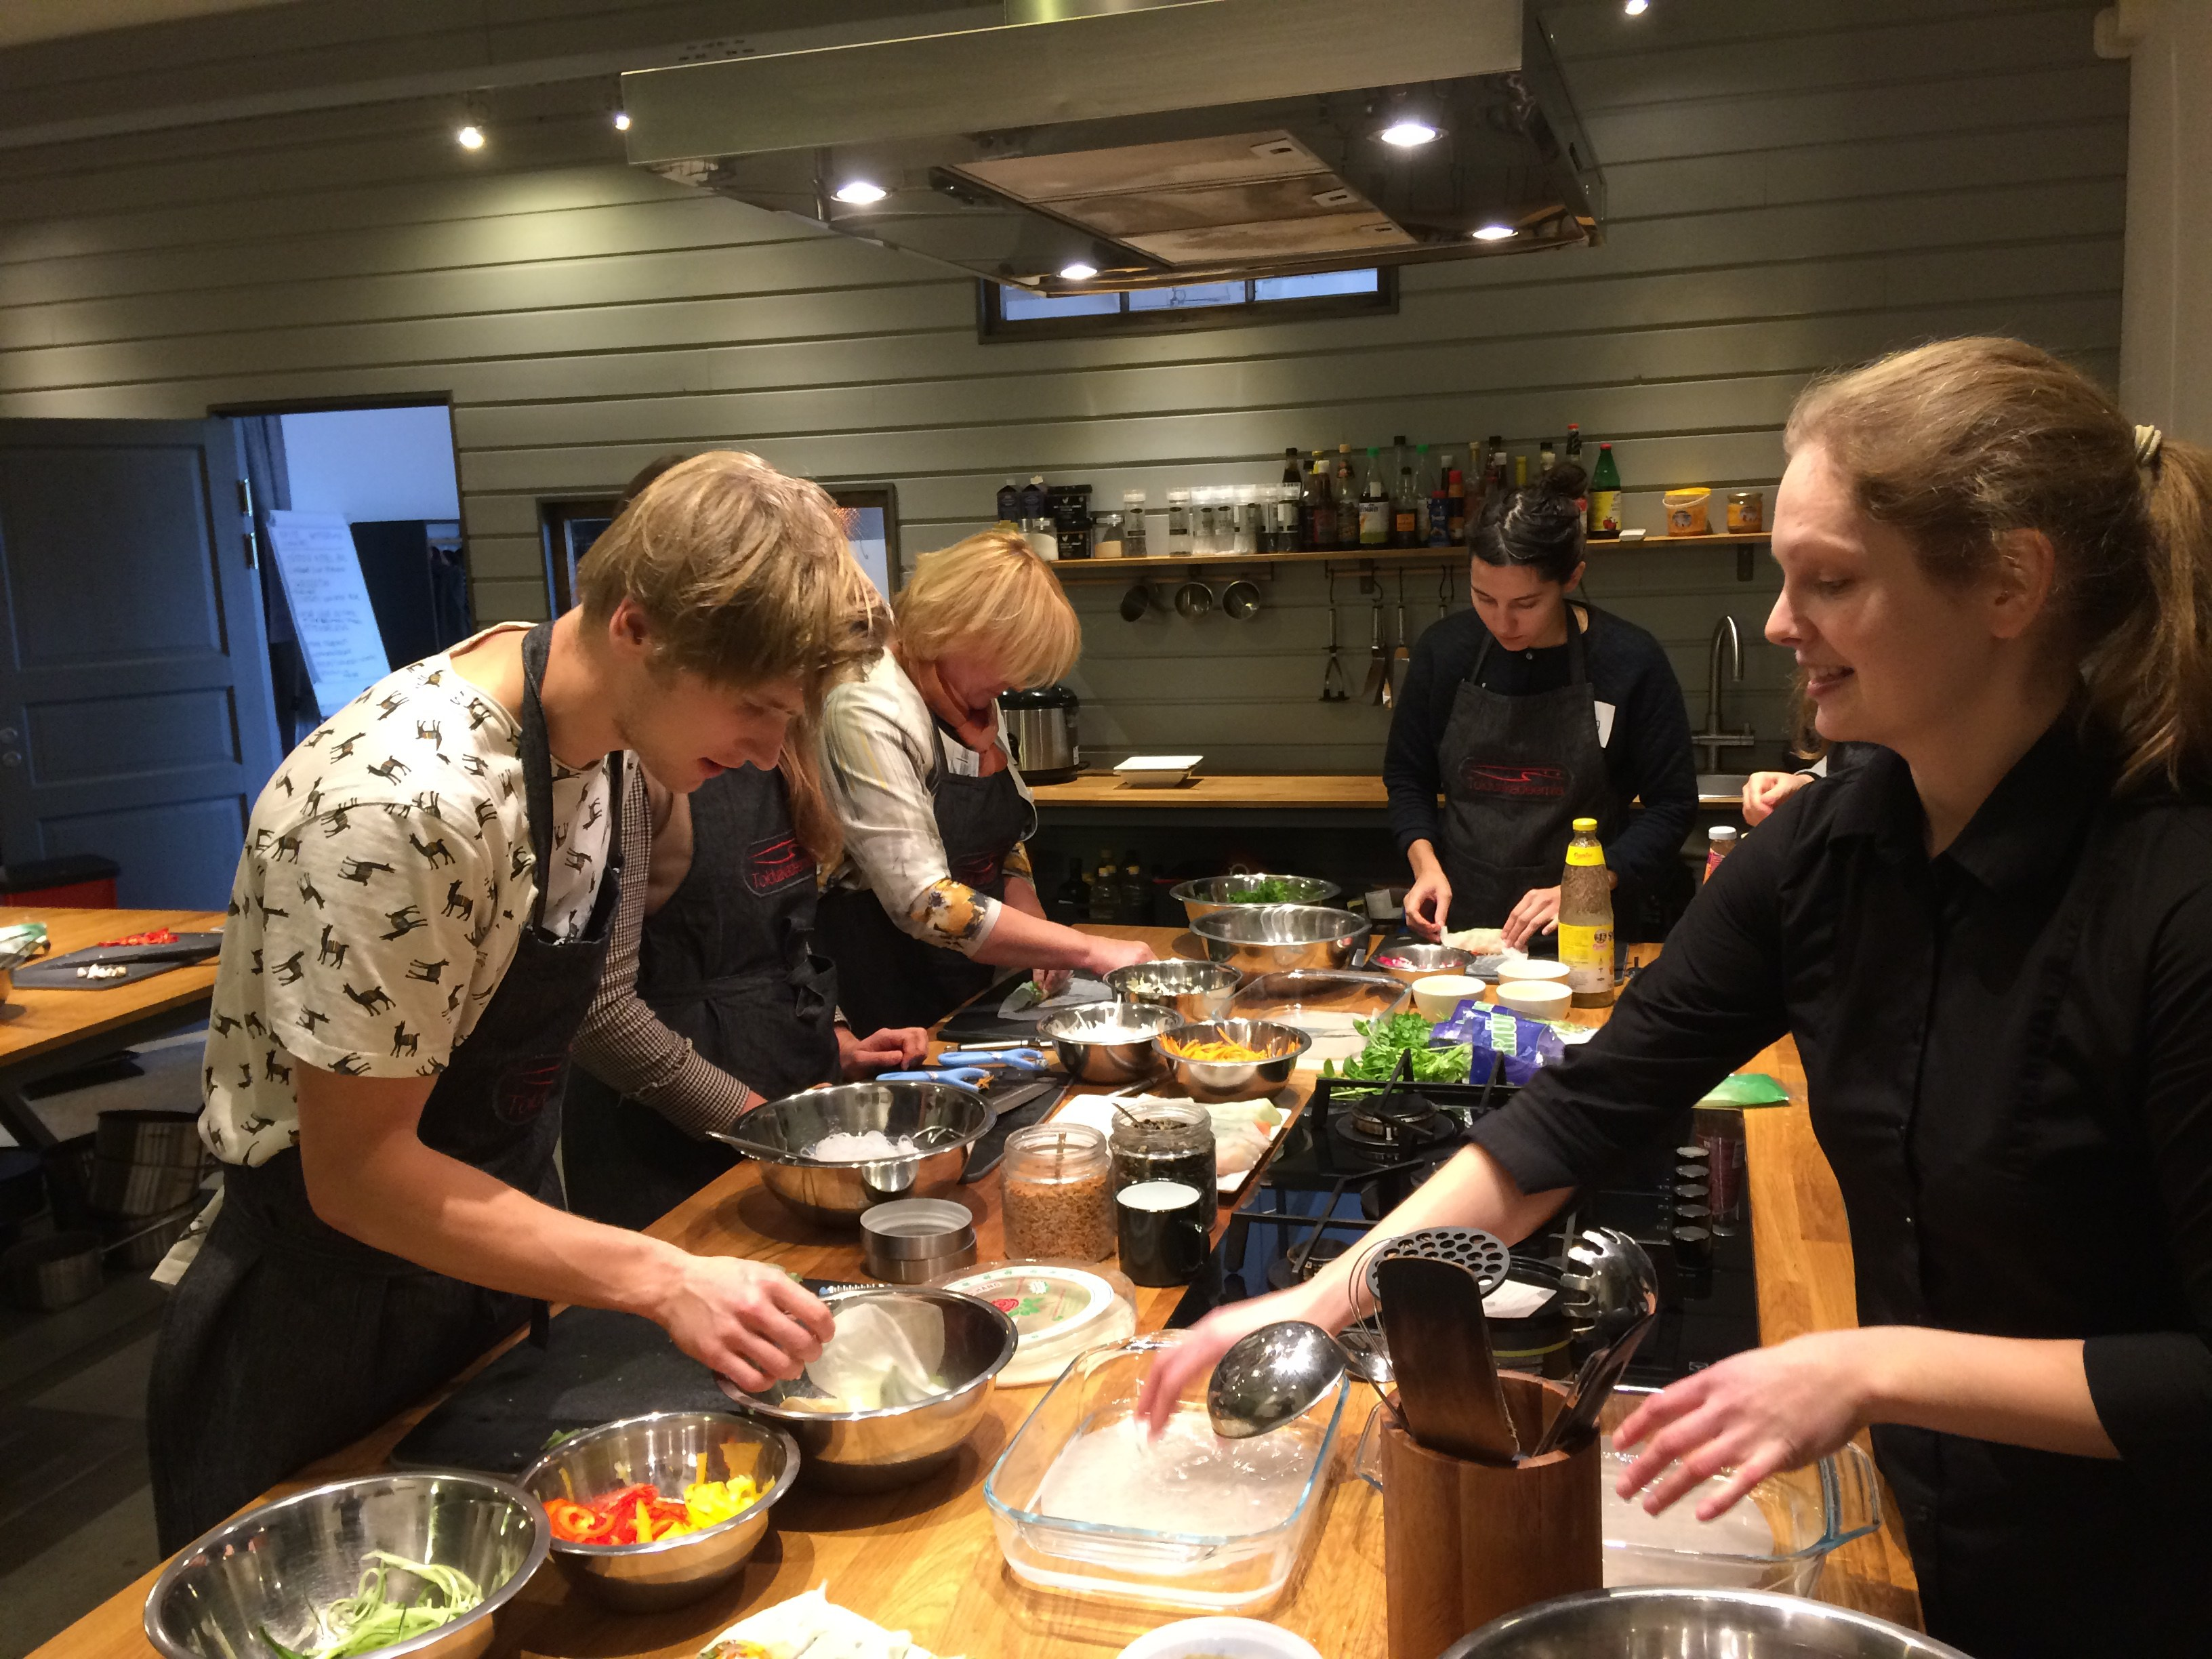 People interacting with food during a workshop in the Tartu City Lab